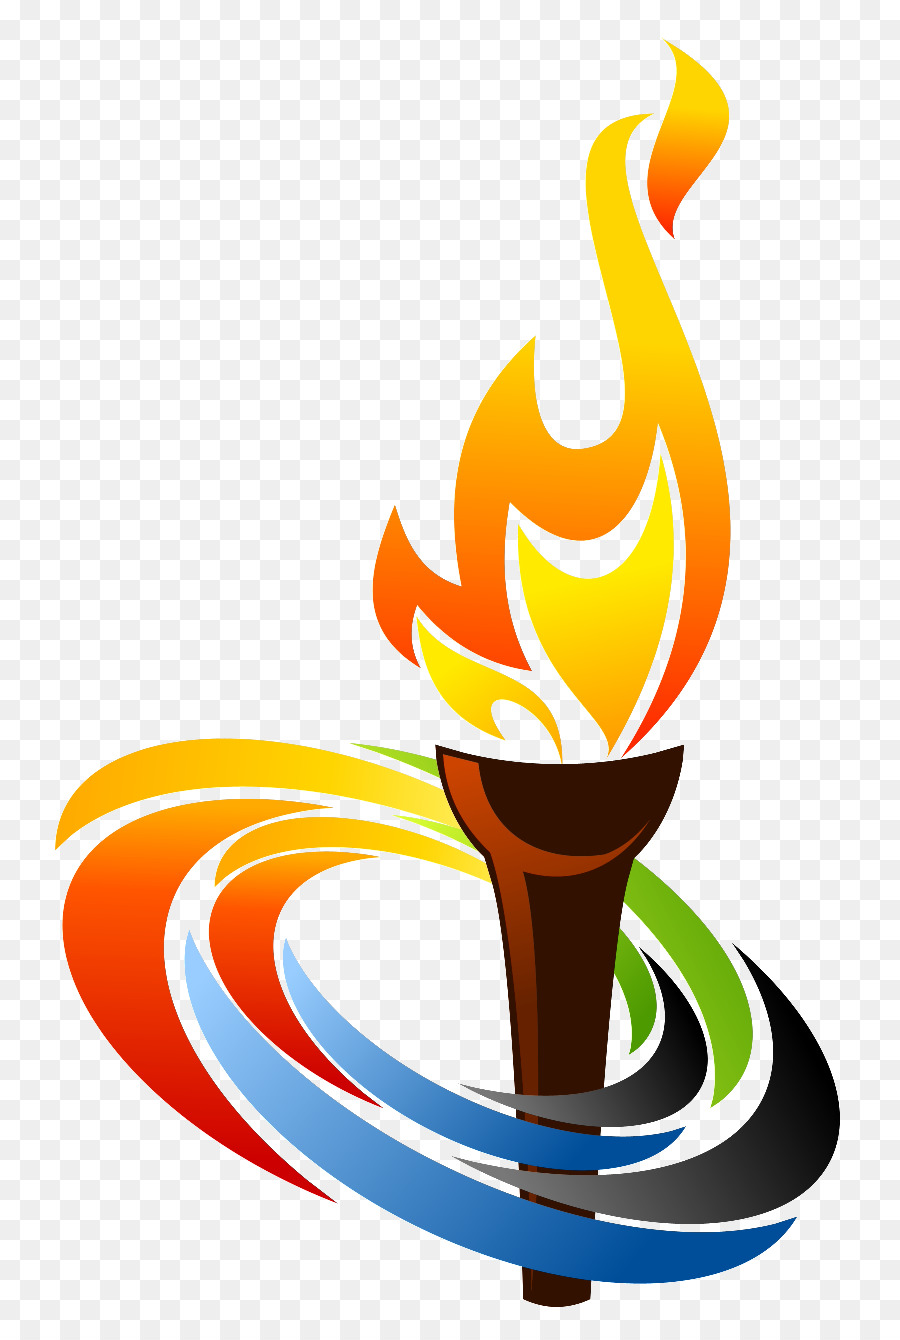 winter olympic games 2016 summer olympics 2018 winter olympics torch rh kisspng com olympic torch clip art free olympic torch clipart free